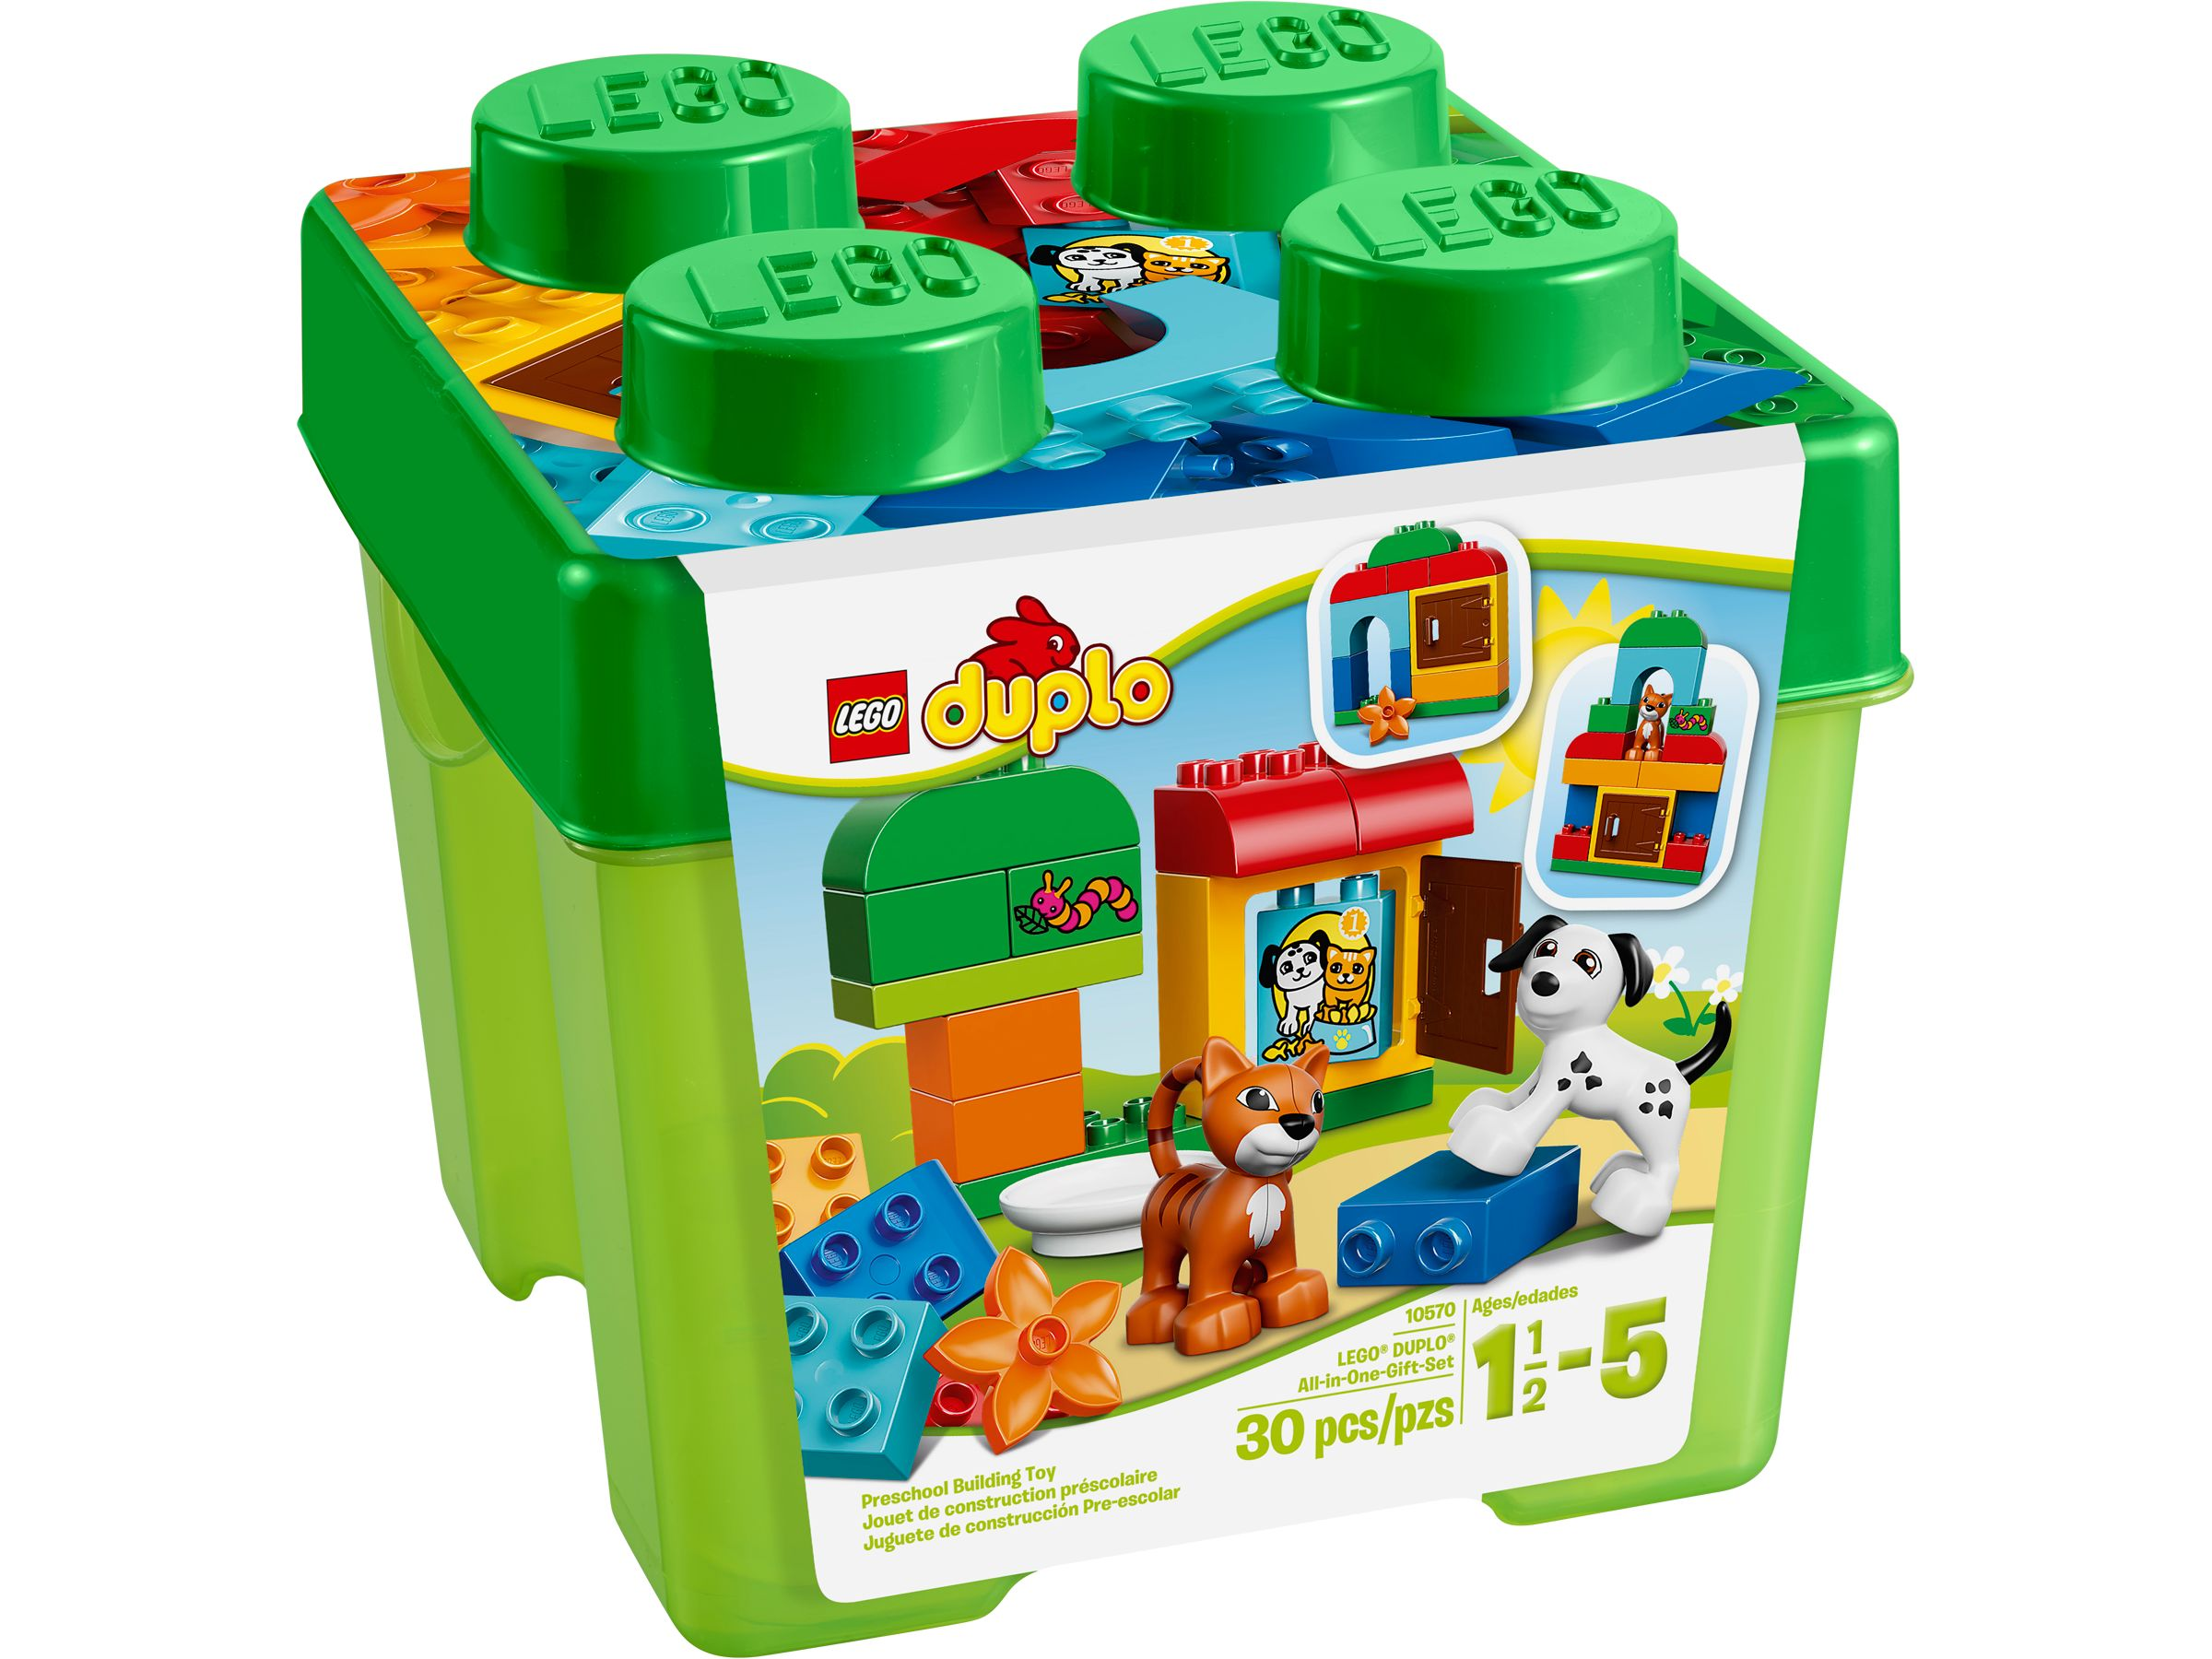 10570 All-in-One Gift Set